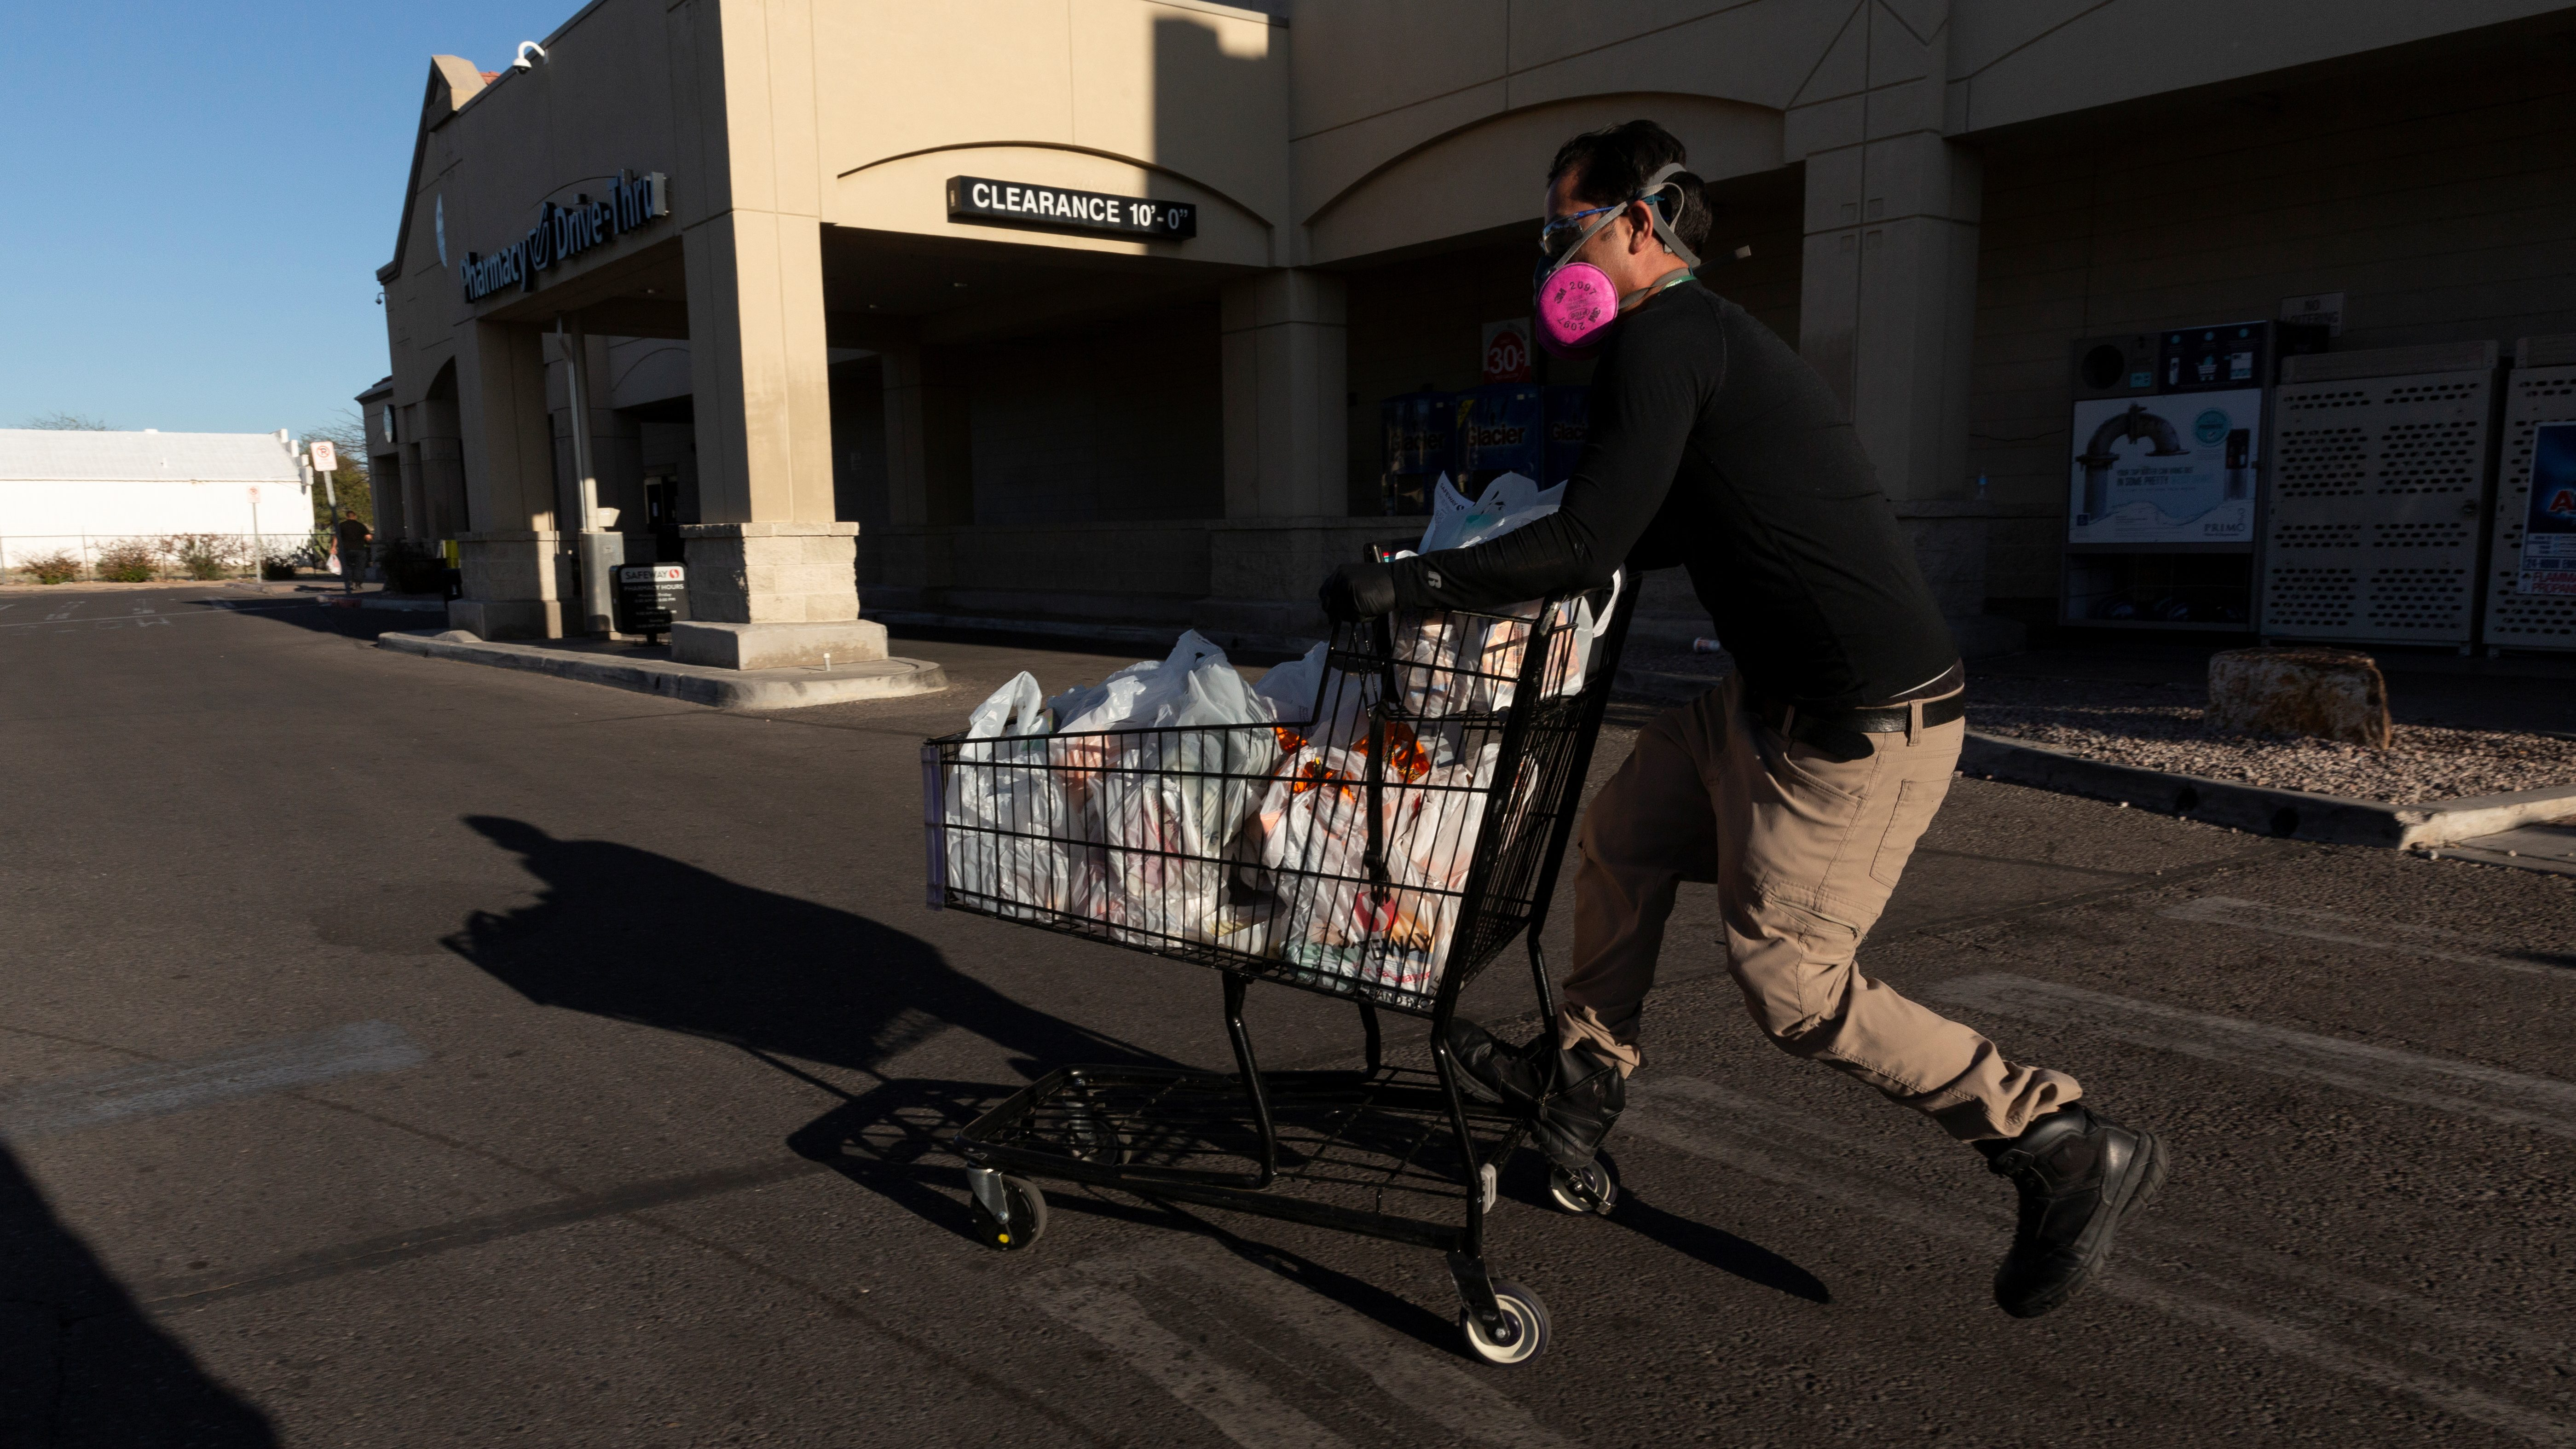 An Instacart employee is pictured working amid the coronavirus outbreak.